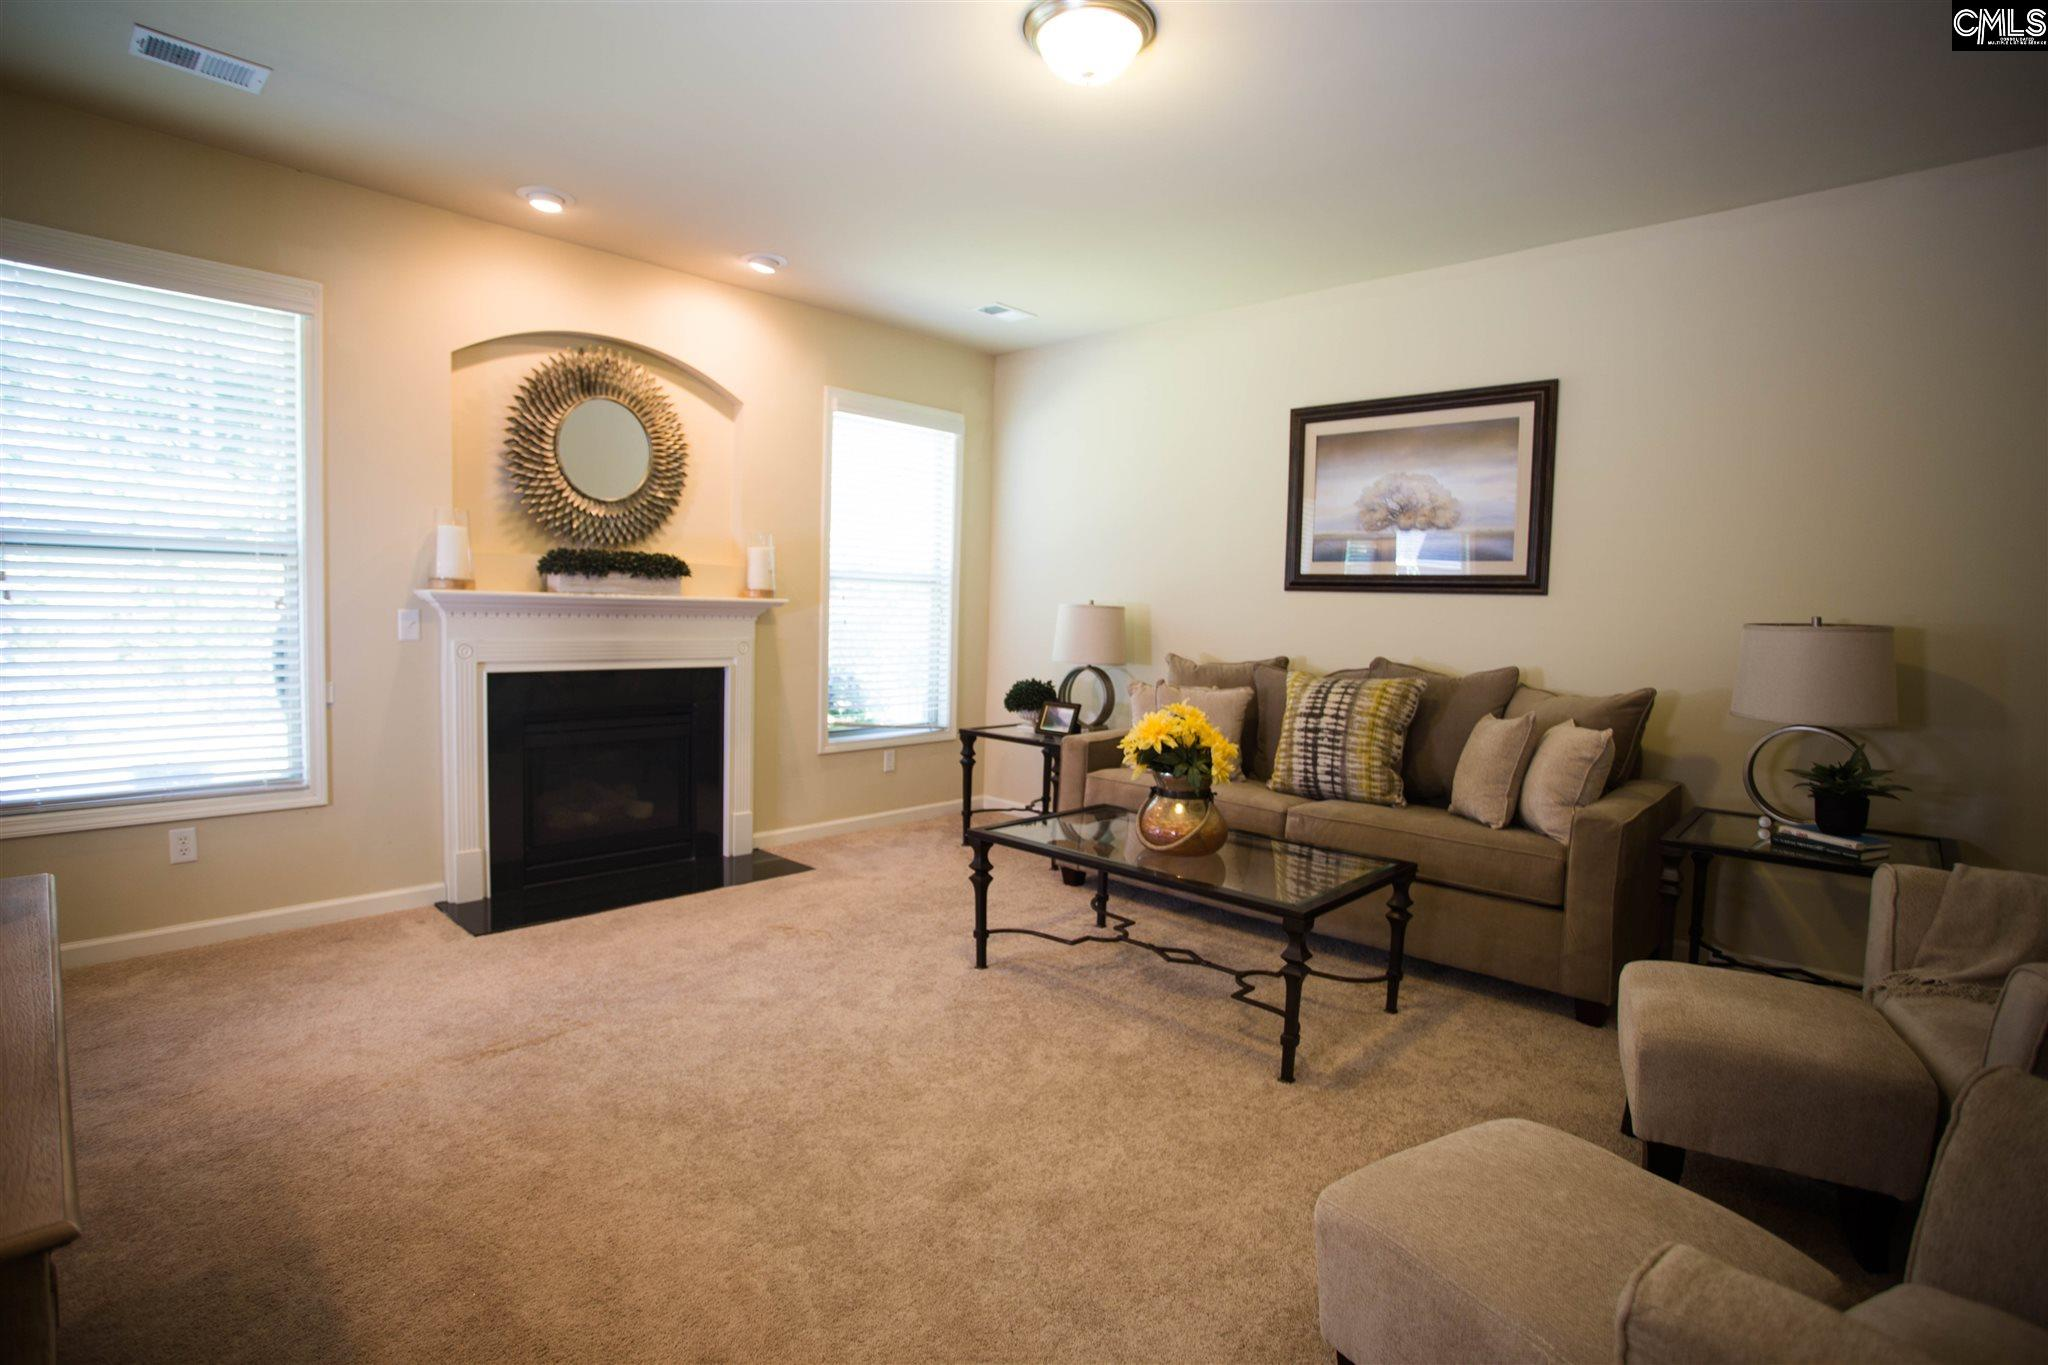 Living Room Sets Columbia Sc 311 Baybridge South Carolina For 249 000 With Mls 432306